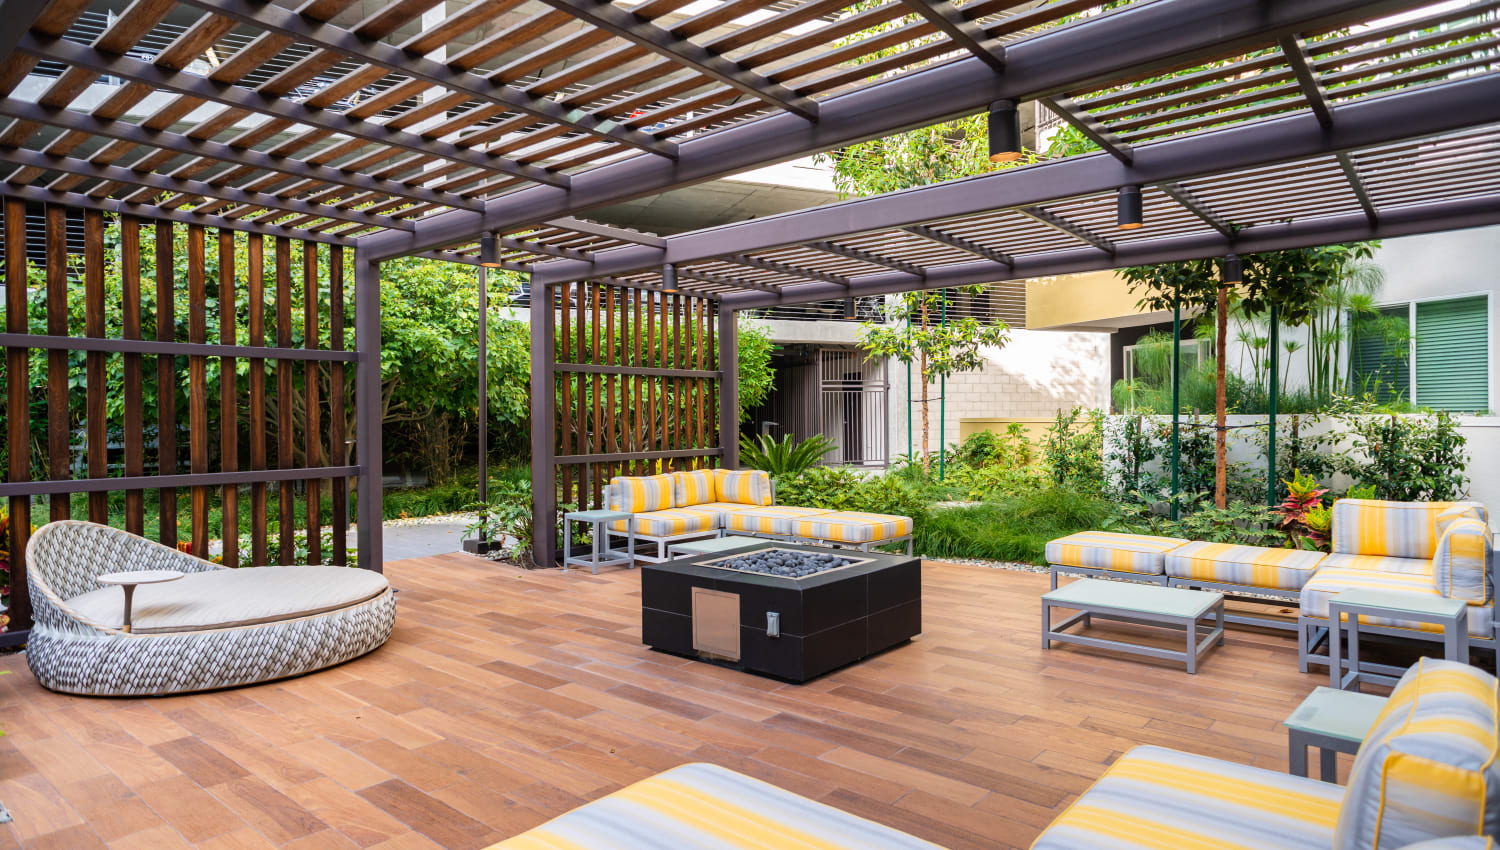 Large pergola covering an outdoor lounge and fire pit area at Fusion Apartments in Irvine, California